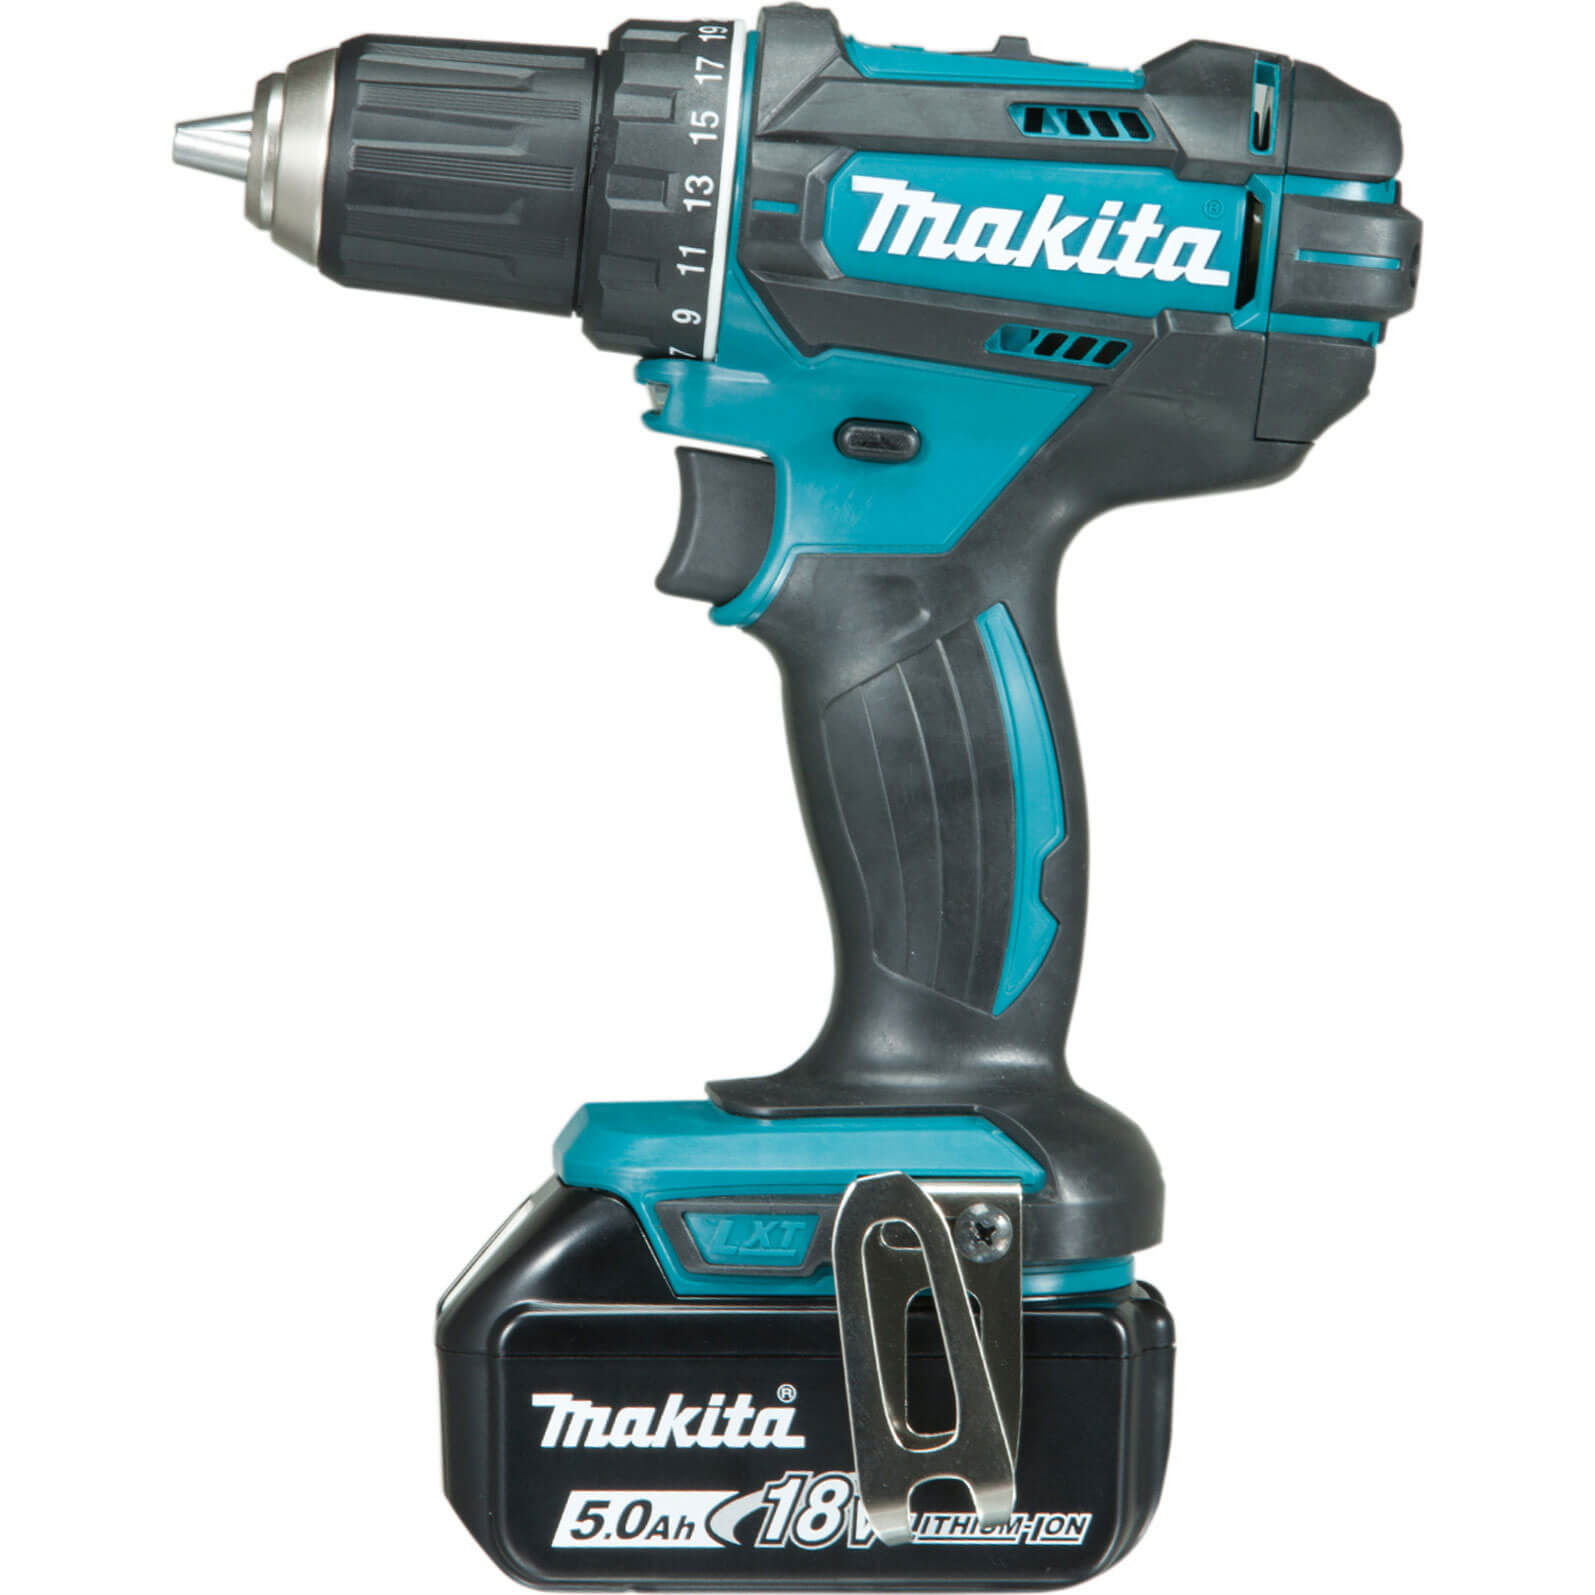 makita ddf482 18v cordless lxt drill driver. Black Bedroom Furniture Sets. Home Design Ideas